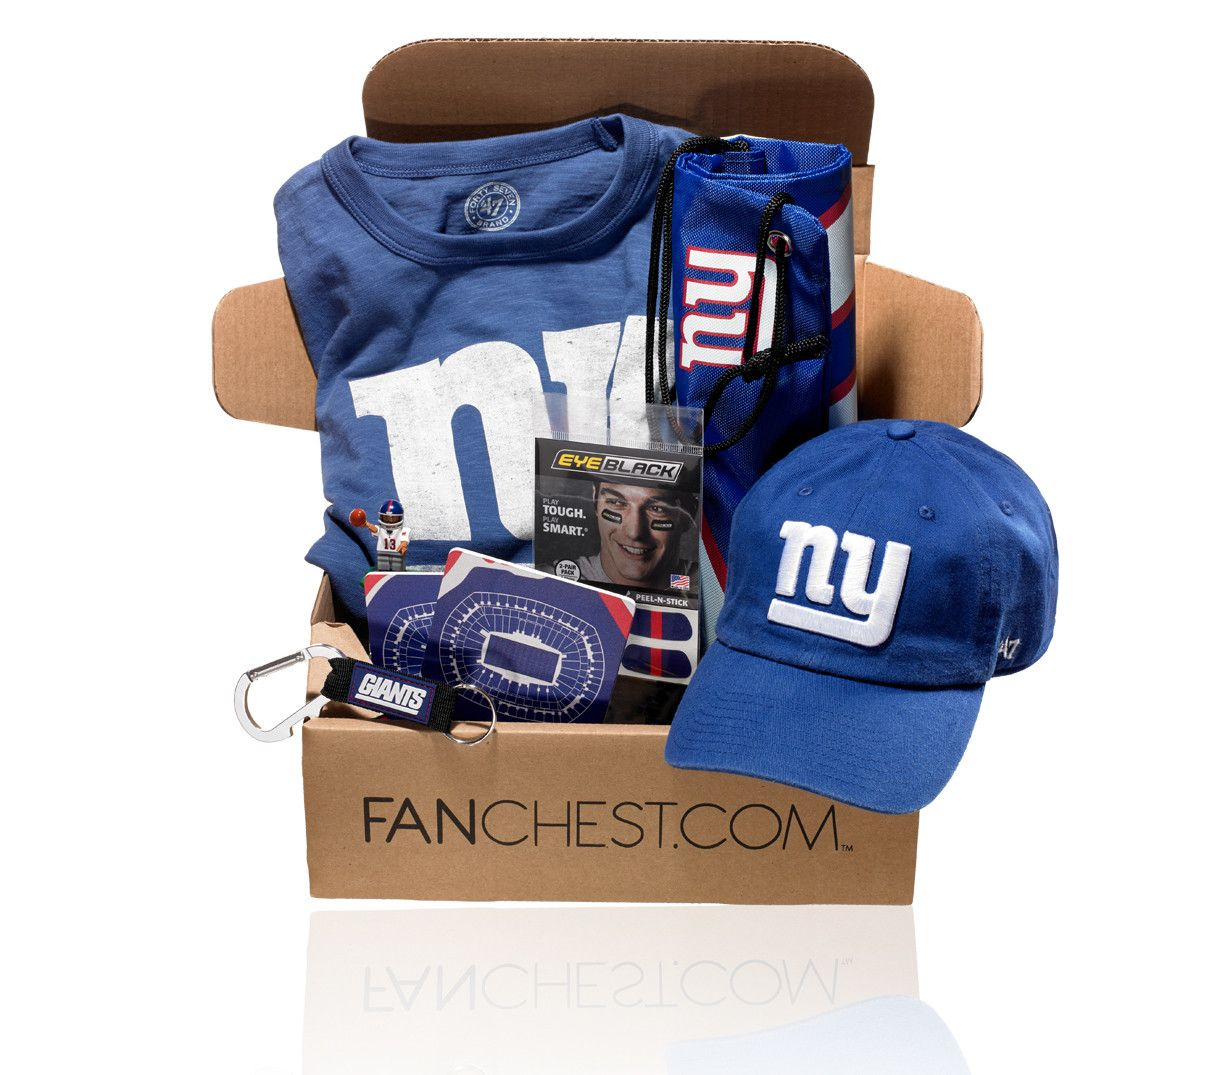 online store d8be8 32c88 New York Giants   New York Giants Gift Ideas   Gifts for ...